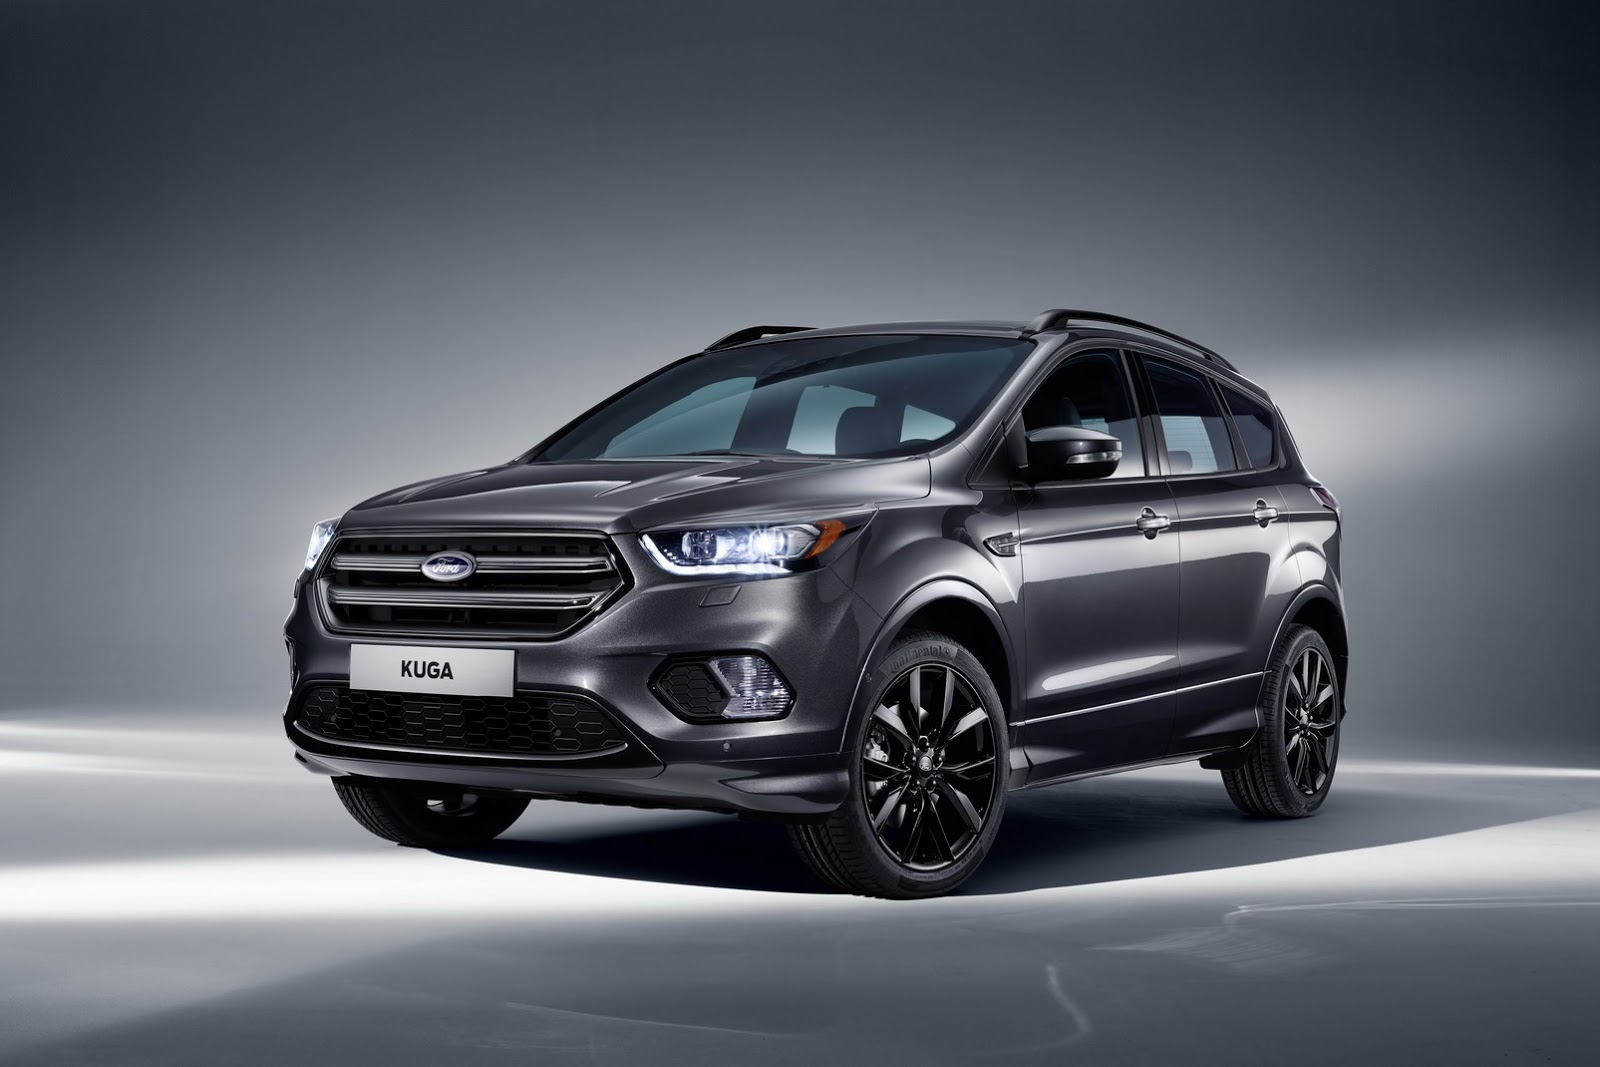 ford kuga 2017 ceny suv a w polsce. Black Bedroom Furniture Sets. Home Design Ideas